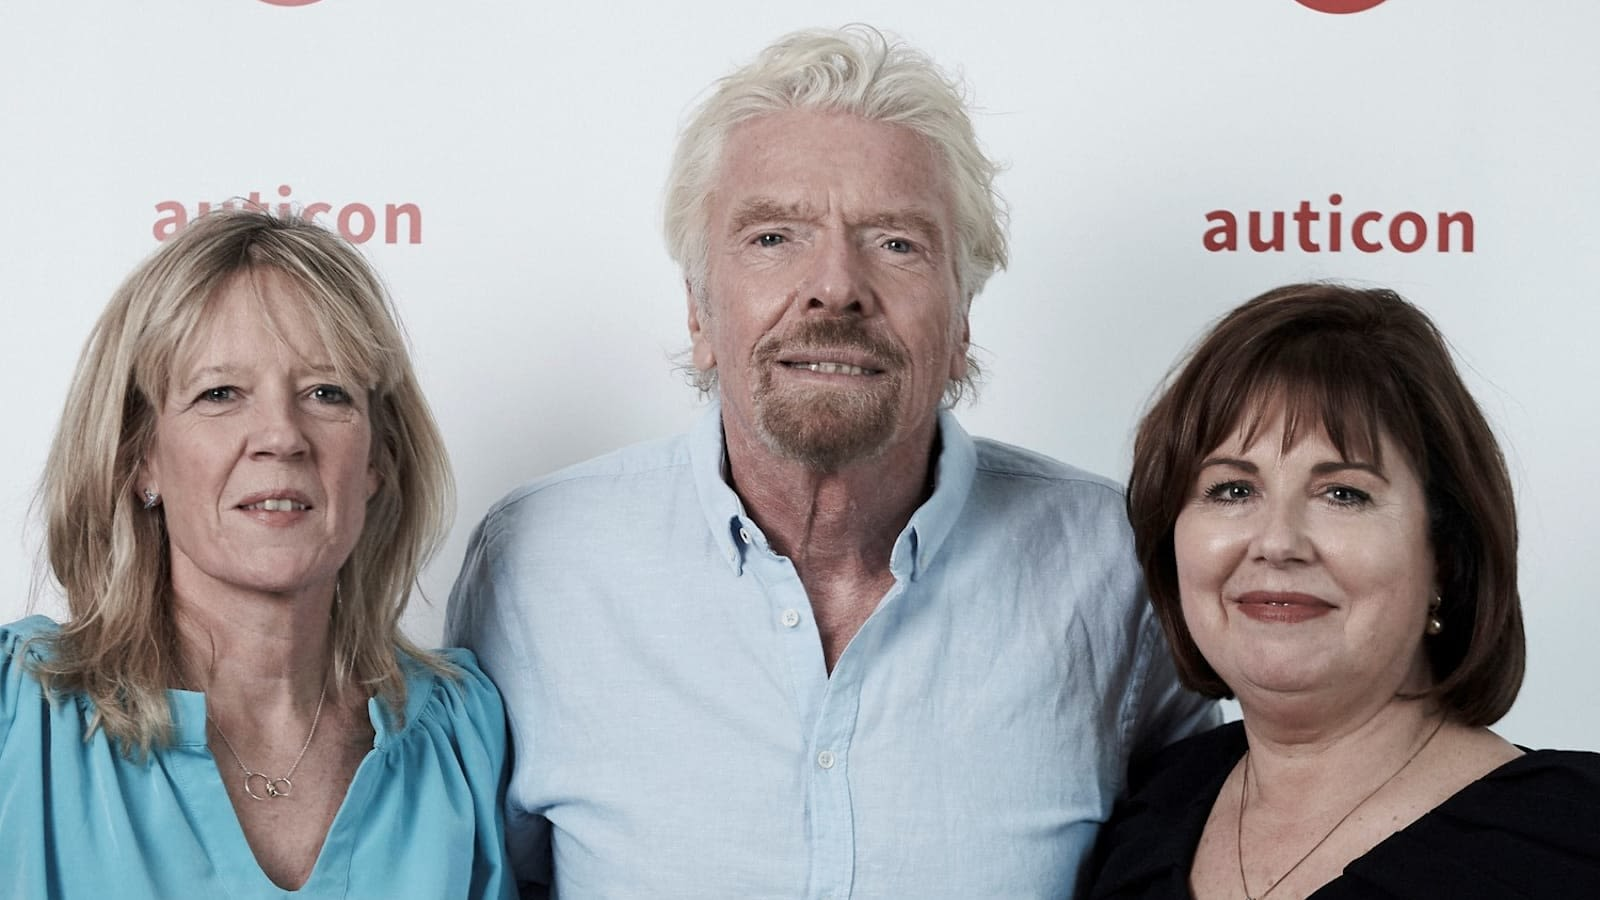 Lisa Thomas, Richard Branson and Amanda Turnill, auticon's managing director in Australia